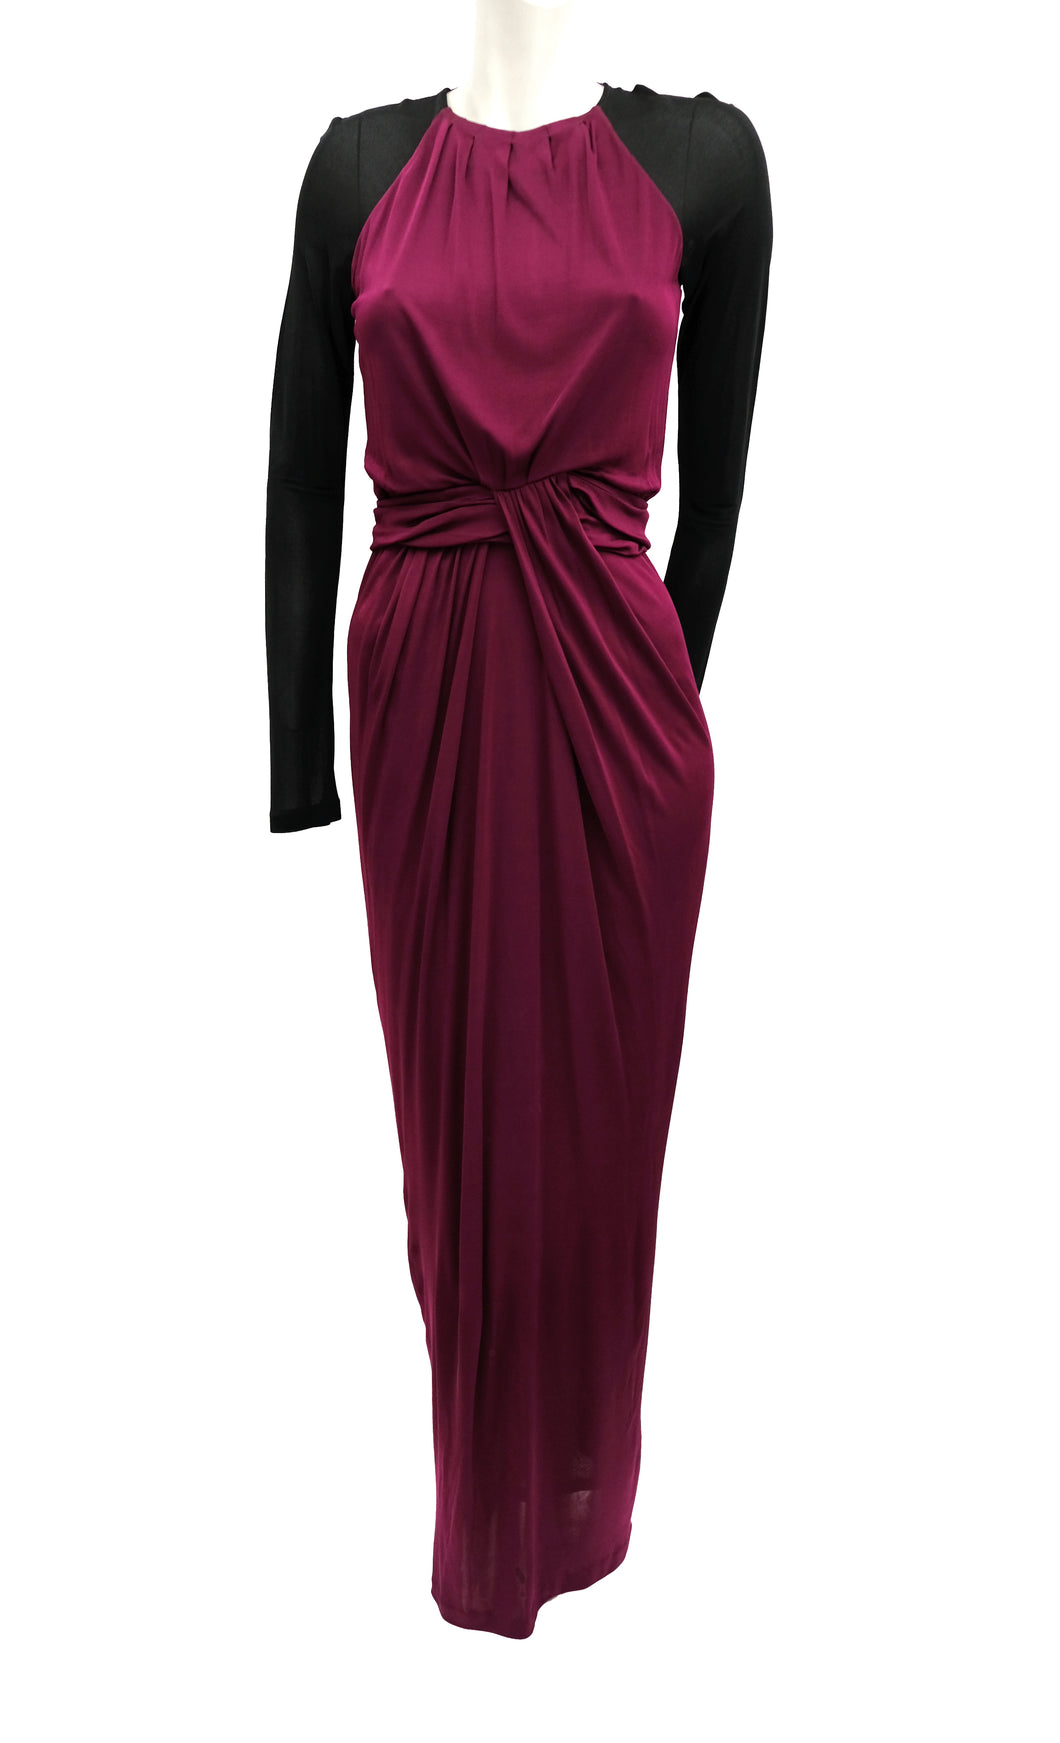 Hugo Boss Burgundy Floor Length Gown with Black Sleeves, UK10